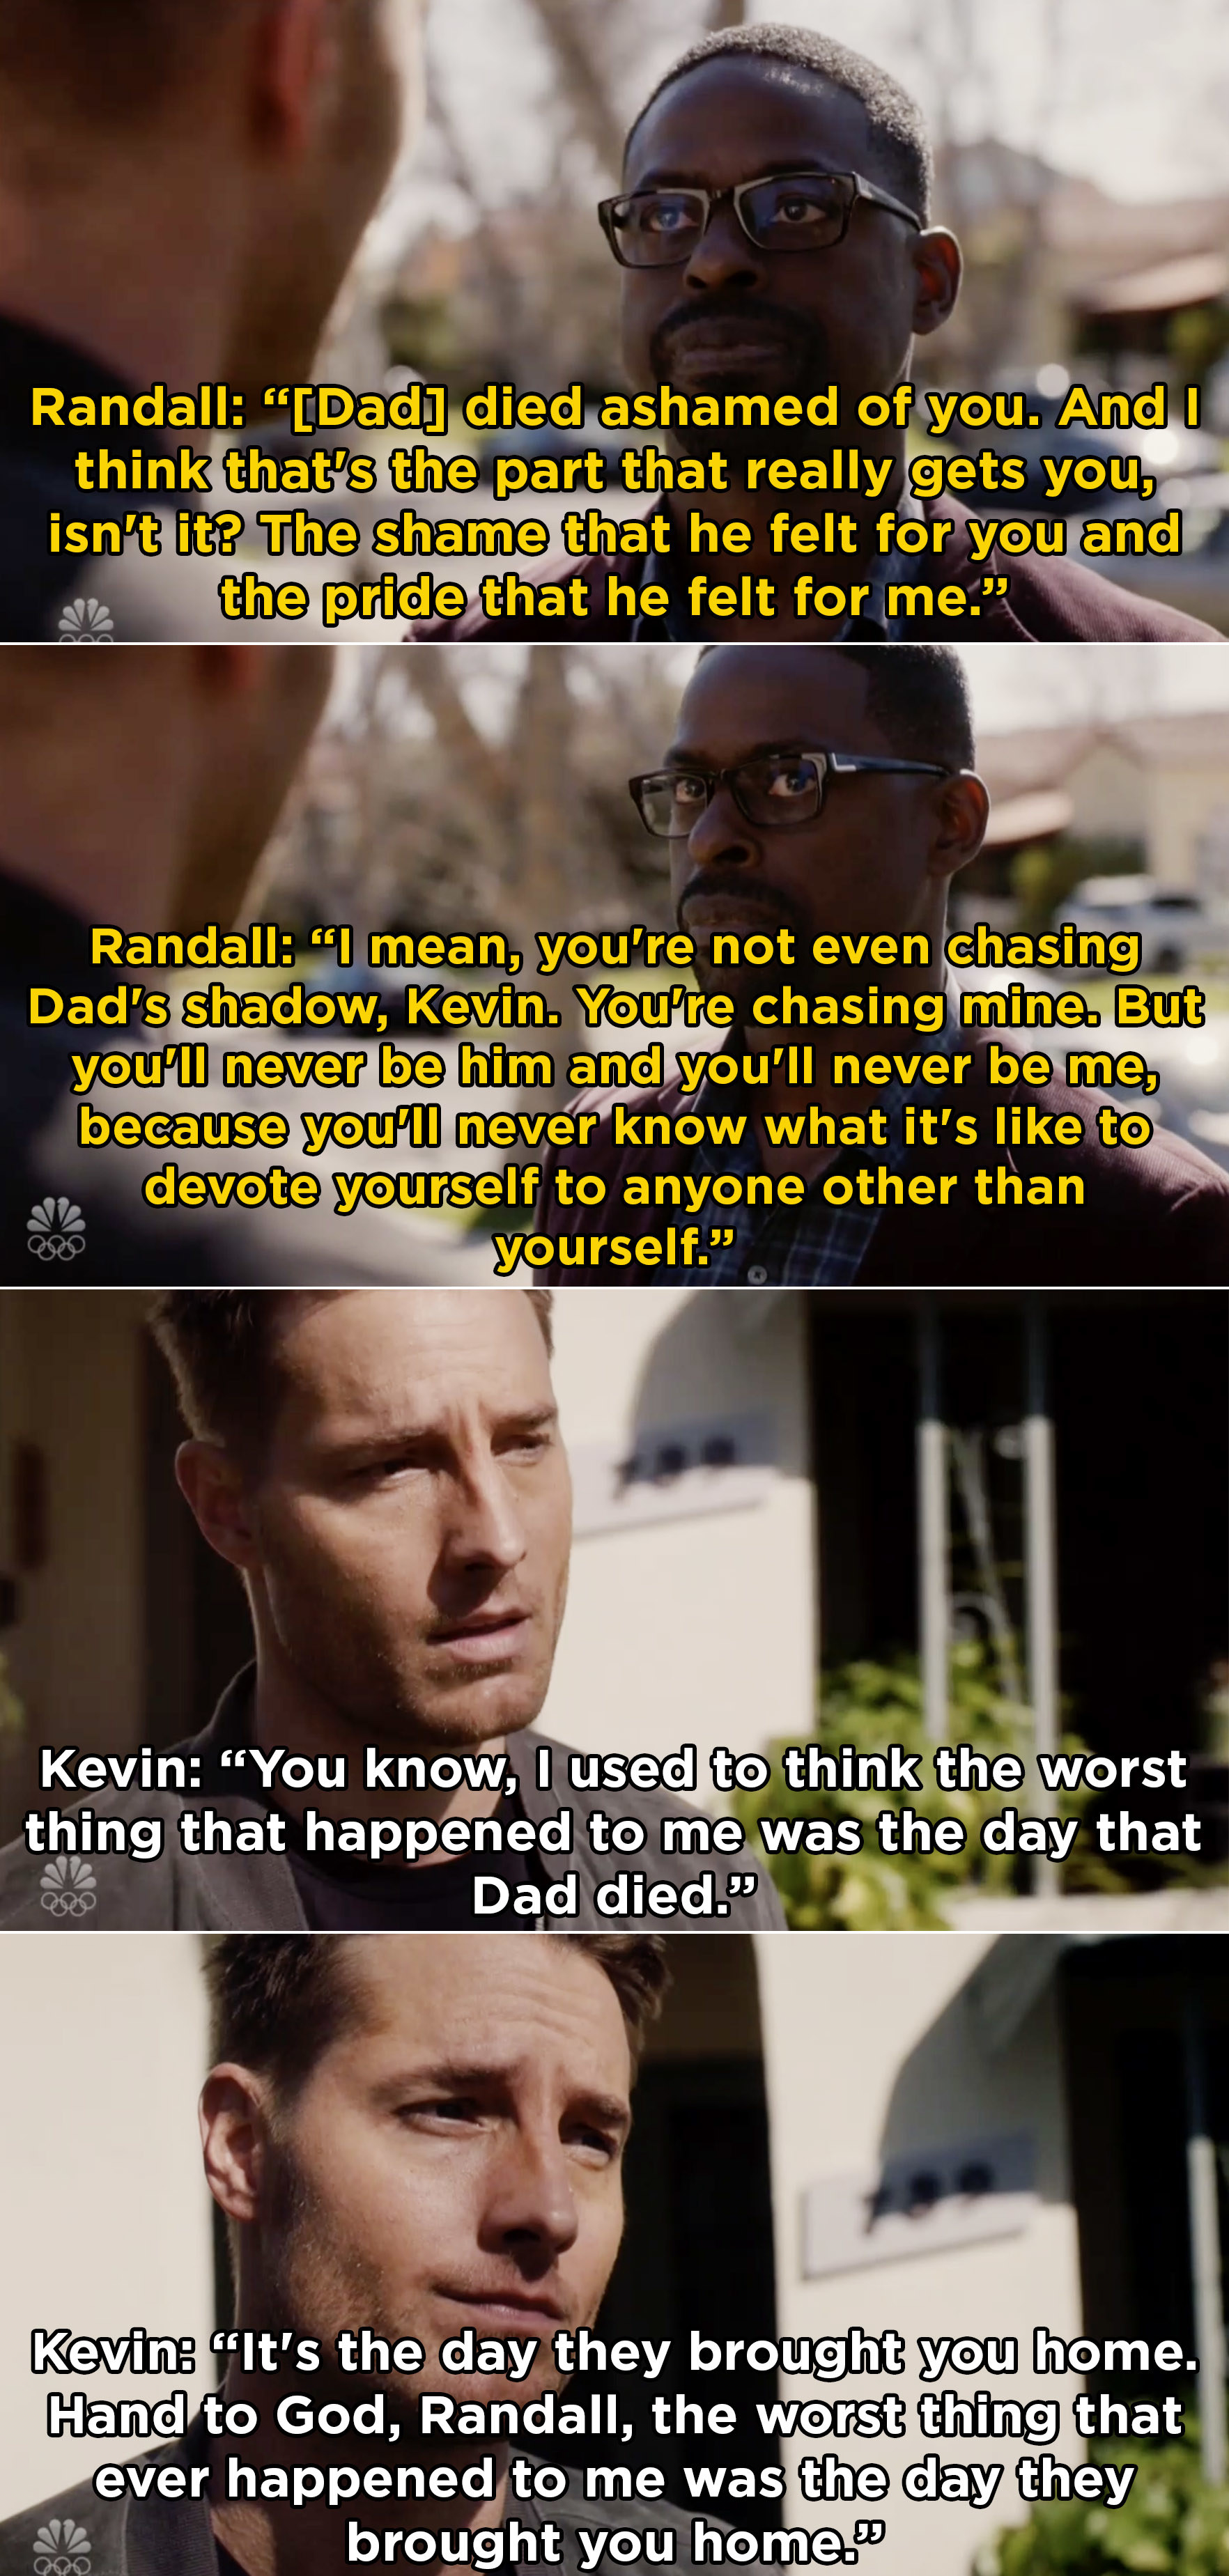 Randall telling Kevin that Jack was always ashamed of him and how Kevin is chasing Randall's shadow